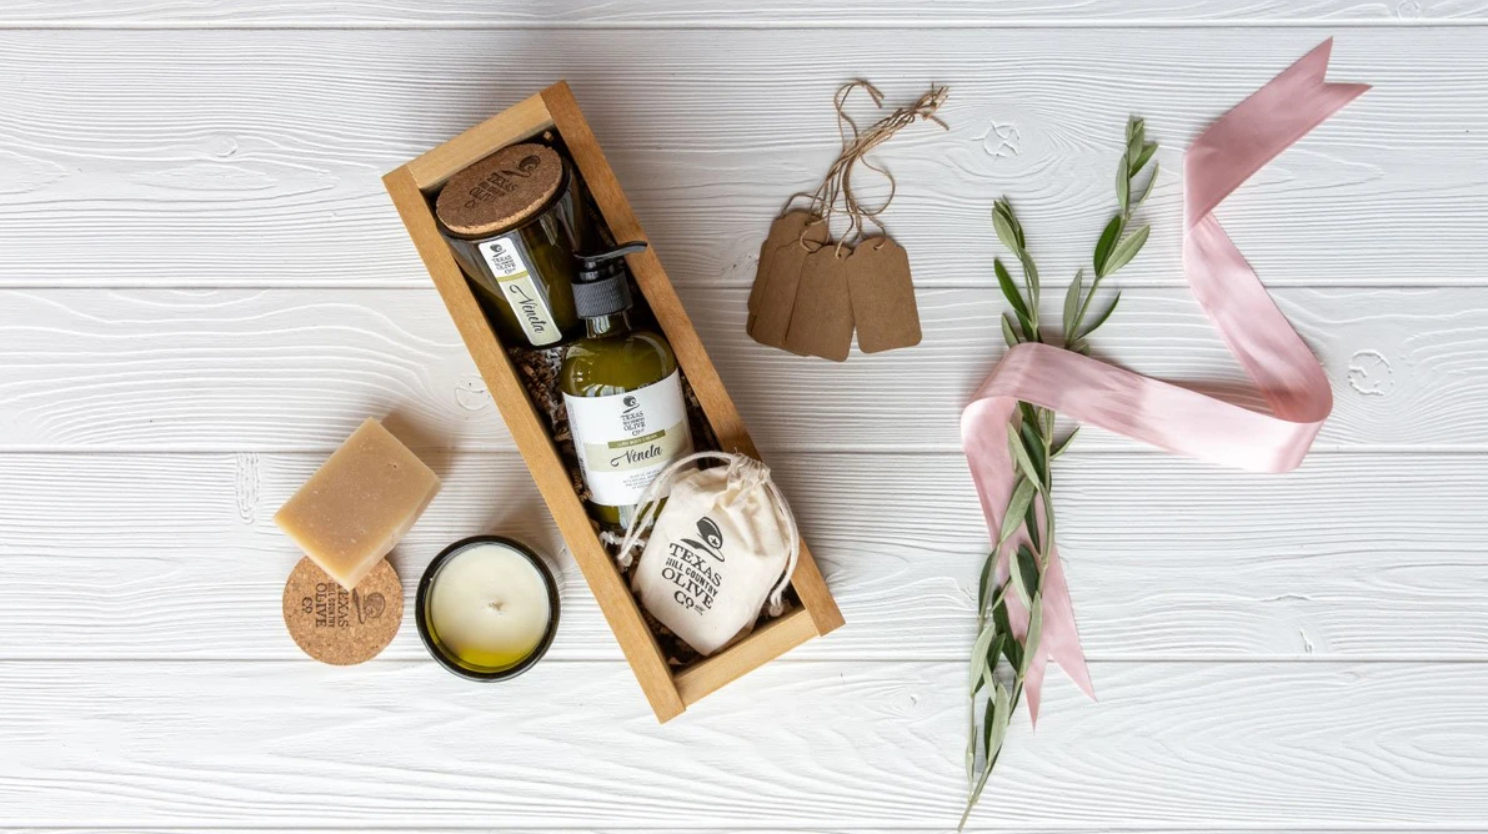 Texas Olive Oil As A Gift